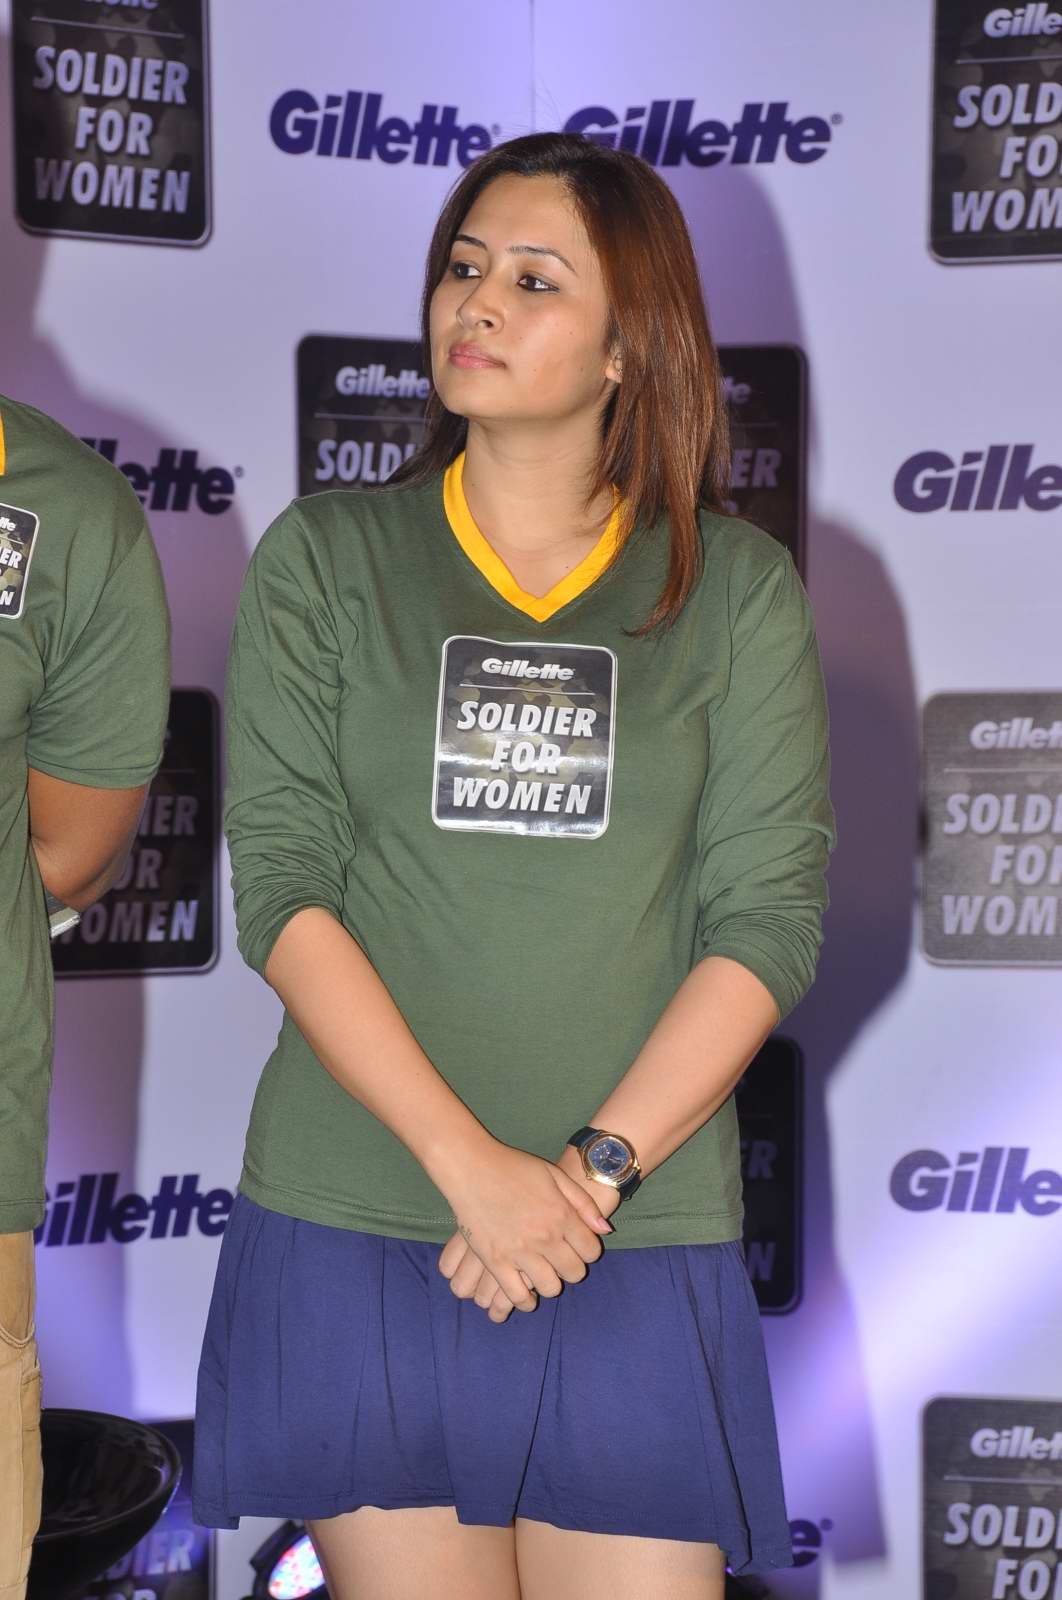 Jwala gutta latest photos at gillette event